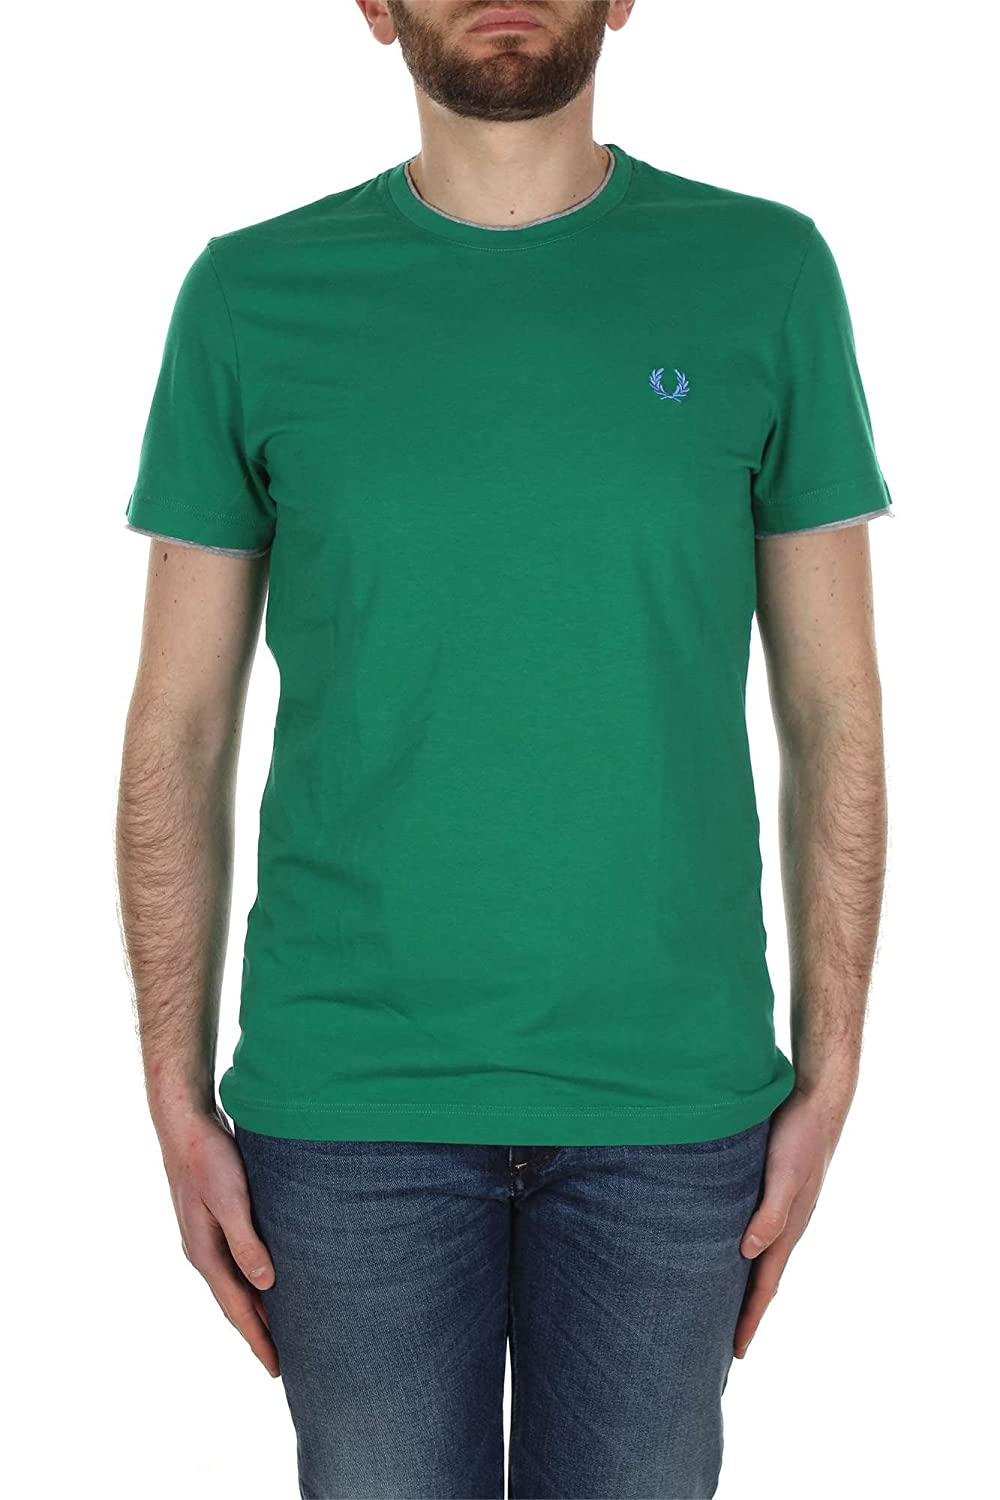 Fred Perry - Camiseta - para Hombre Multicolor Verde: Amazon.es ...